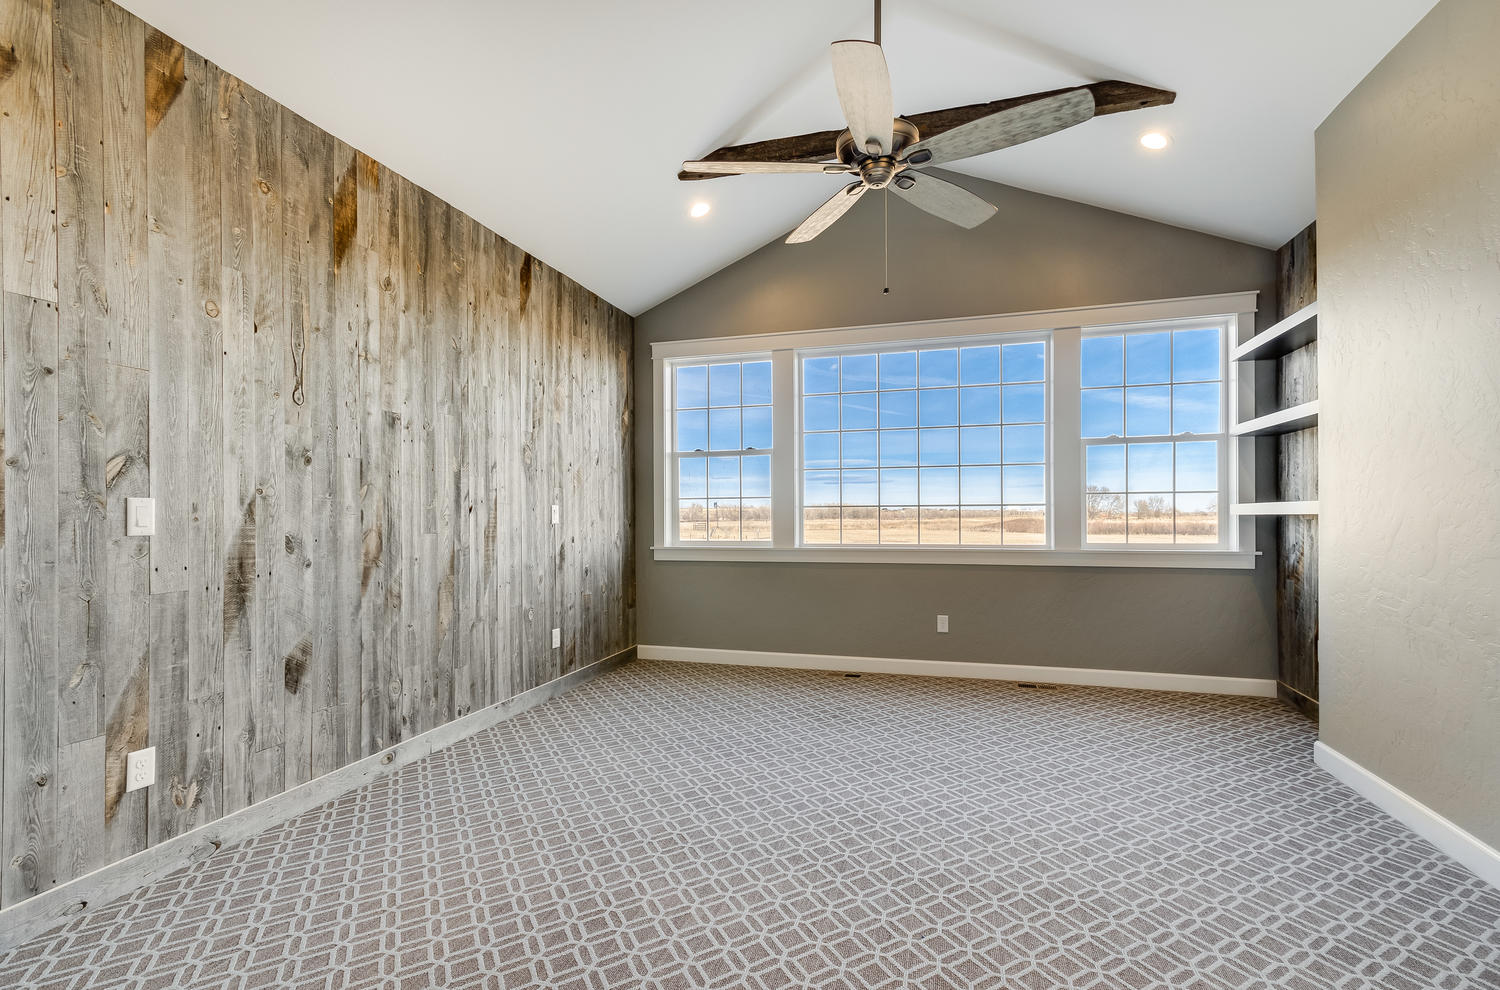 4925 County Rd 24 34 Firestone-large-016-16-Master Bedroom-1500x990-72dpi